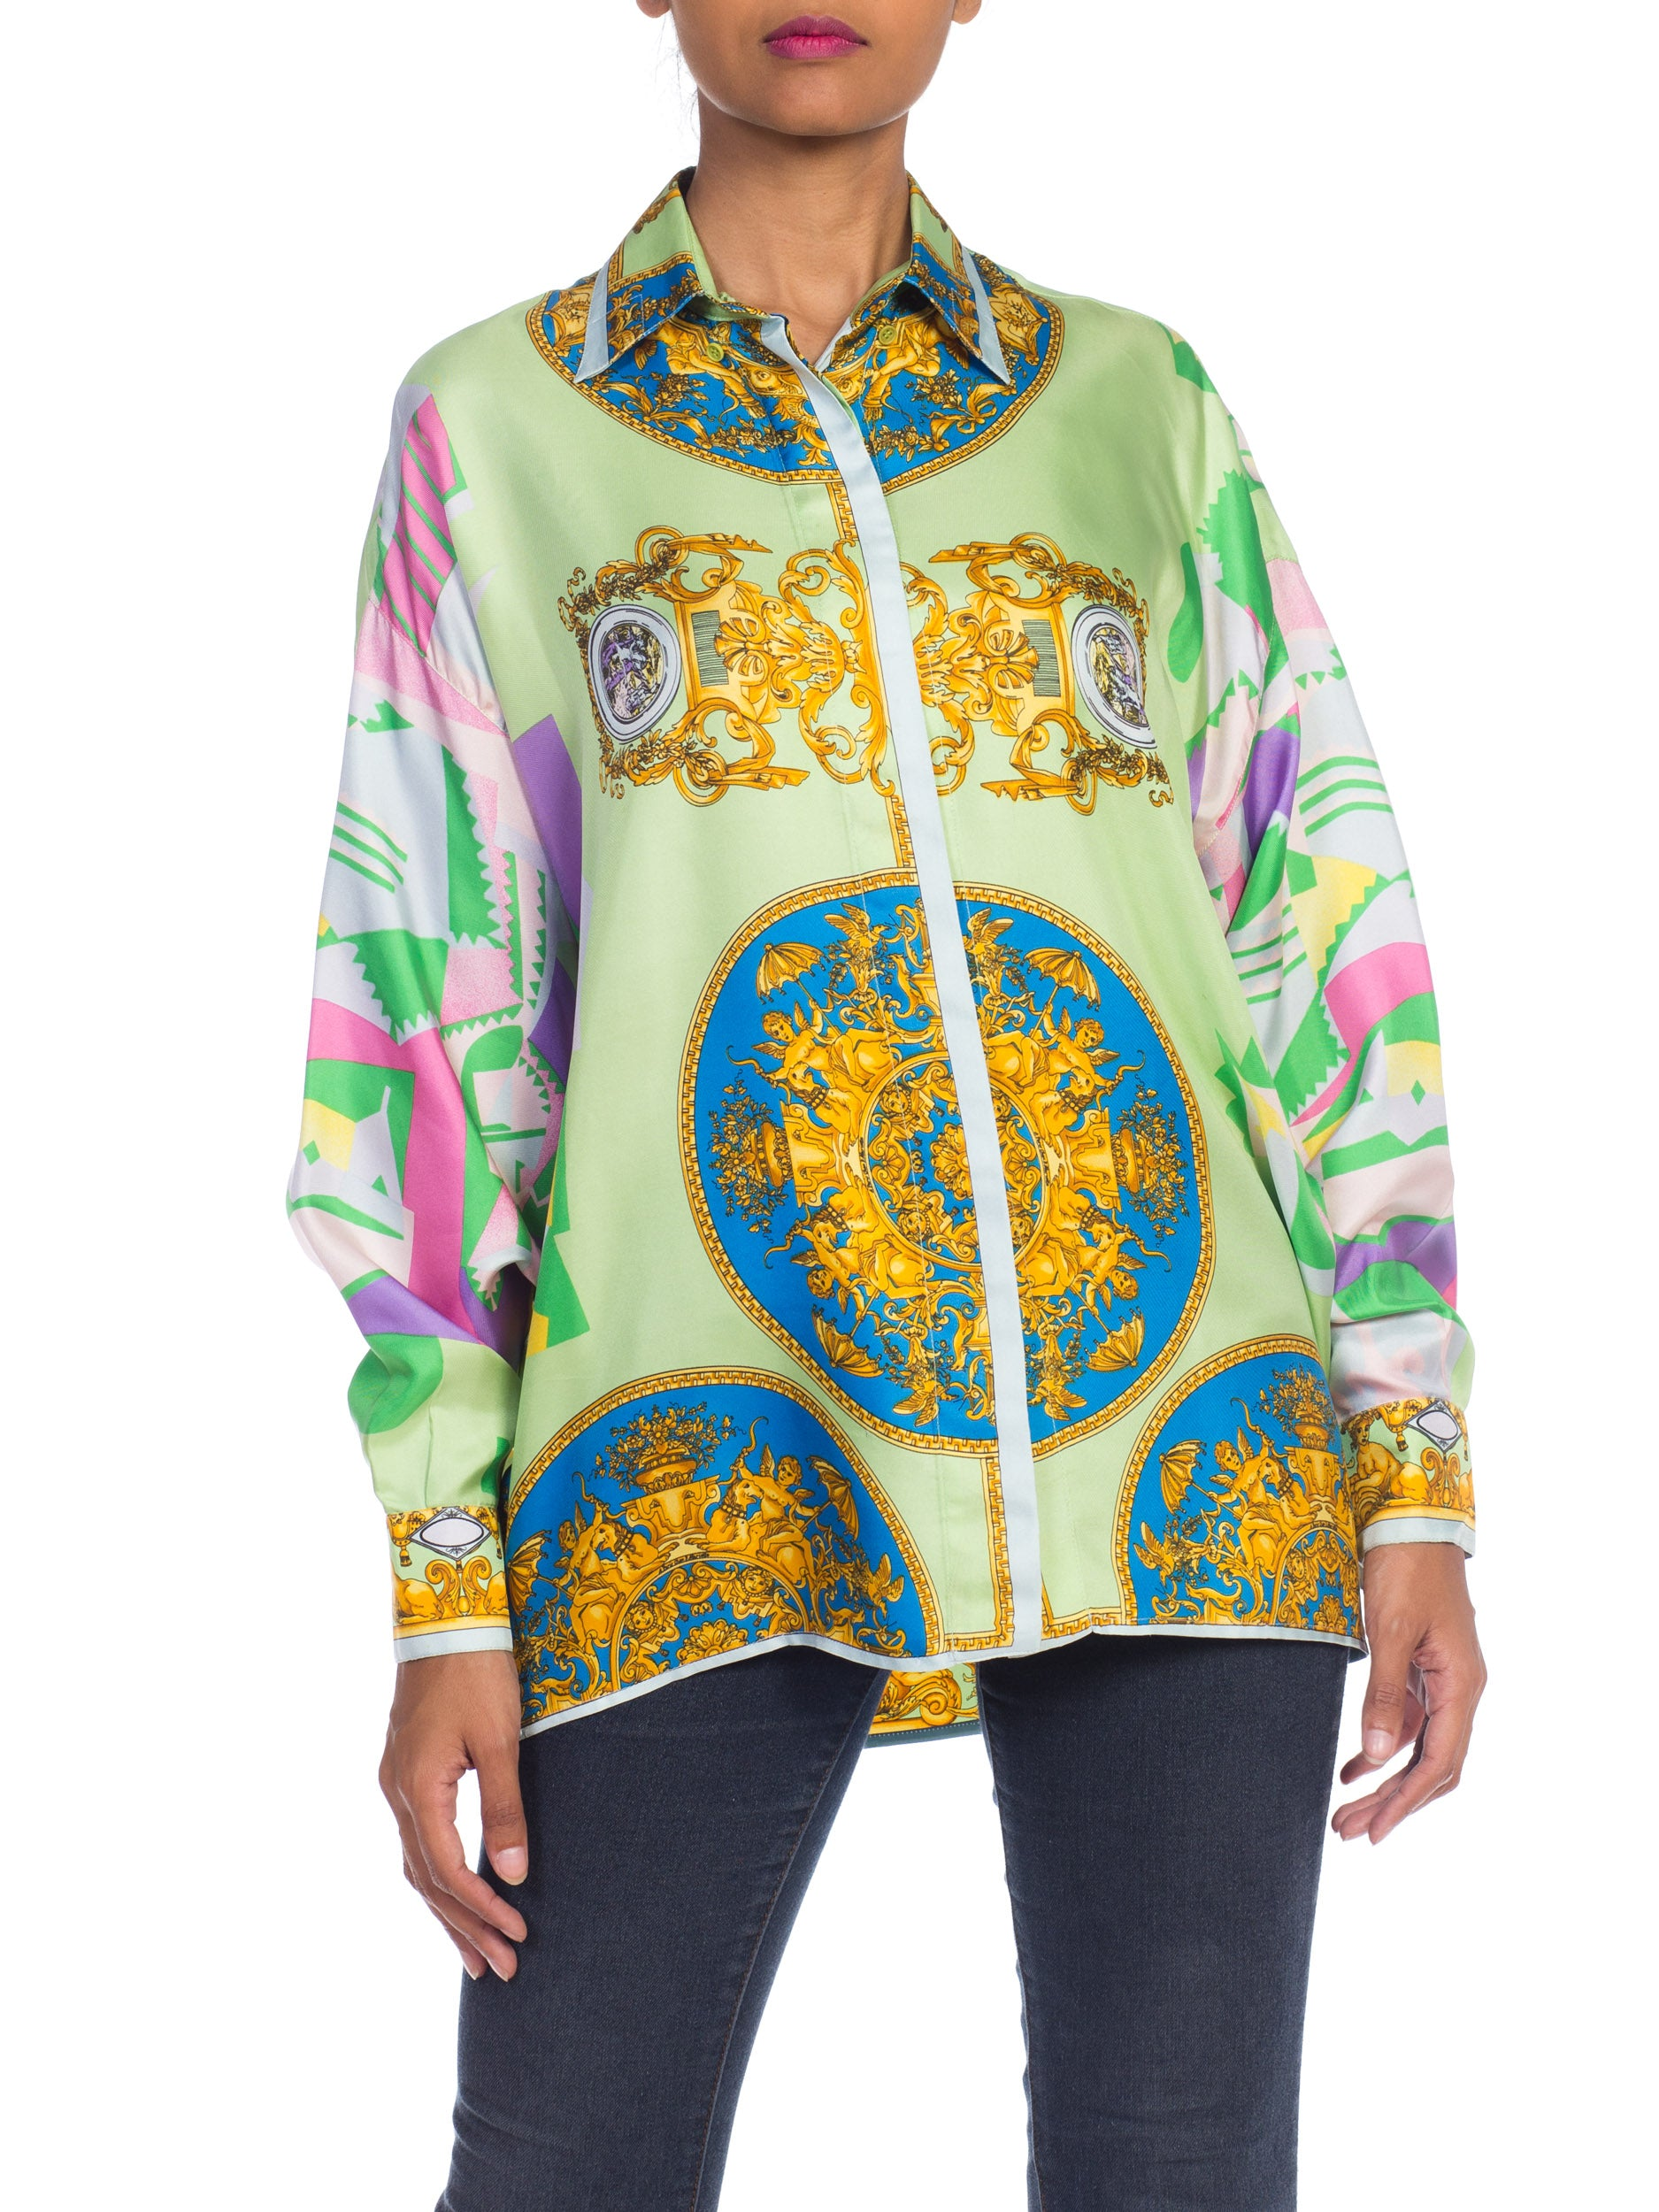 1990S INSTANTE By GIANNI VERSACE Pastel Silk Art Deco & Baroque Print Shirt Sz 40